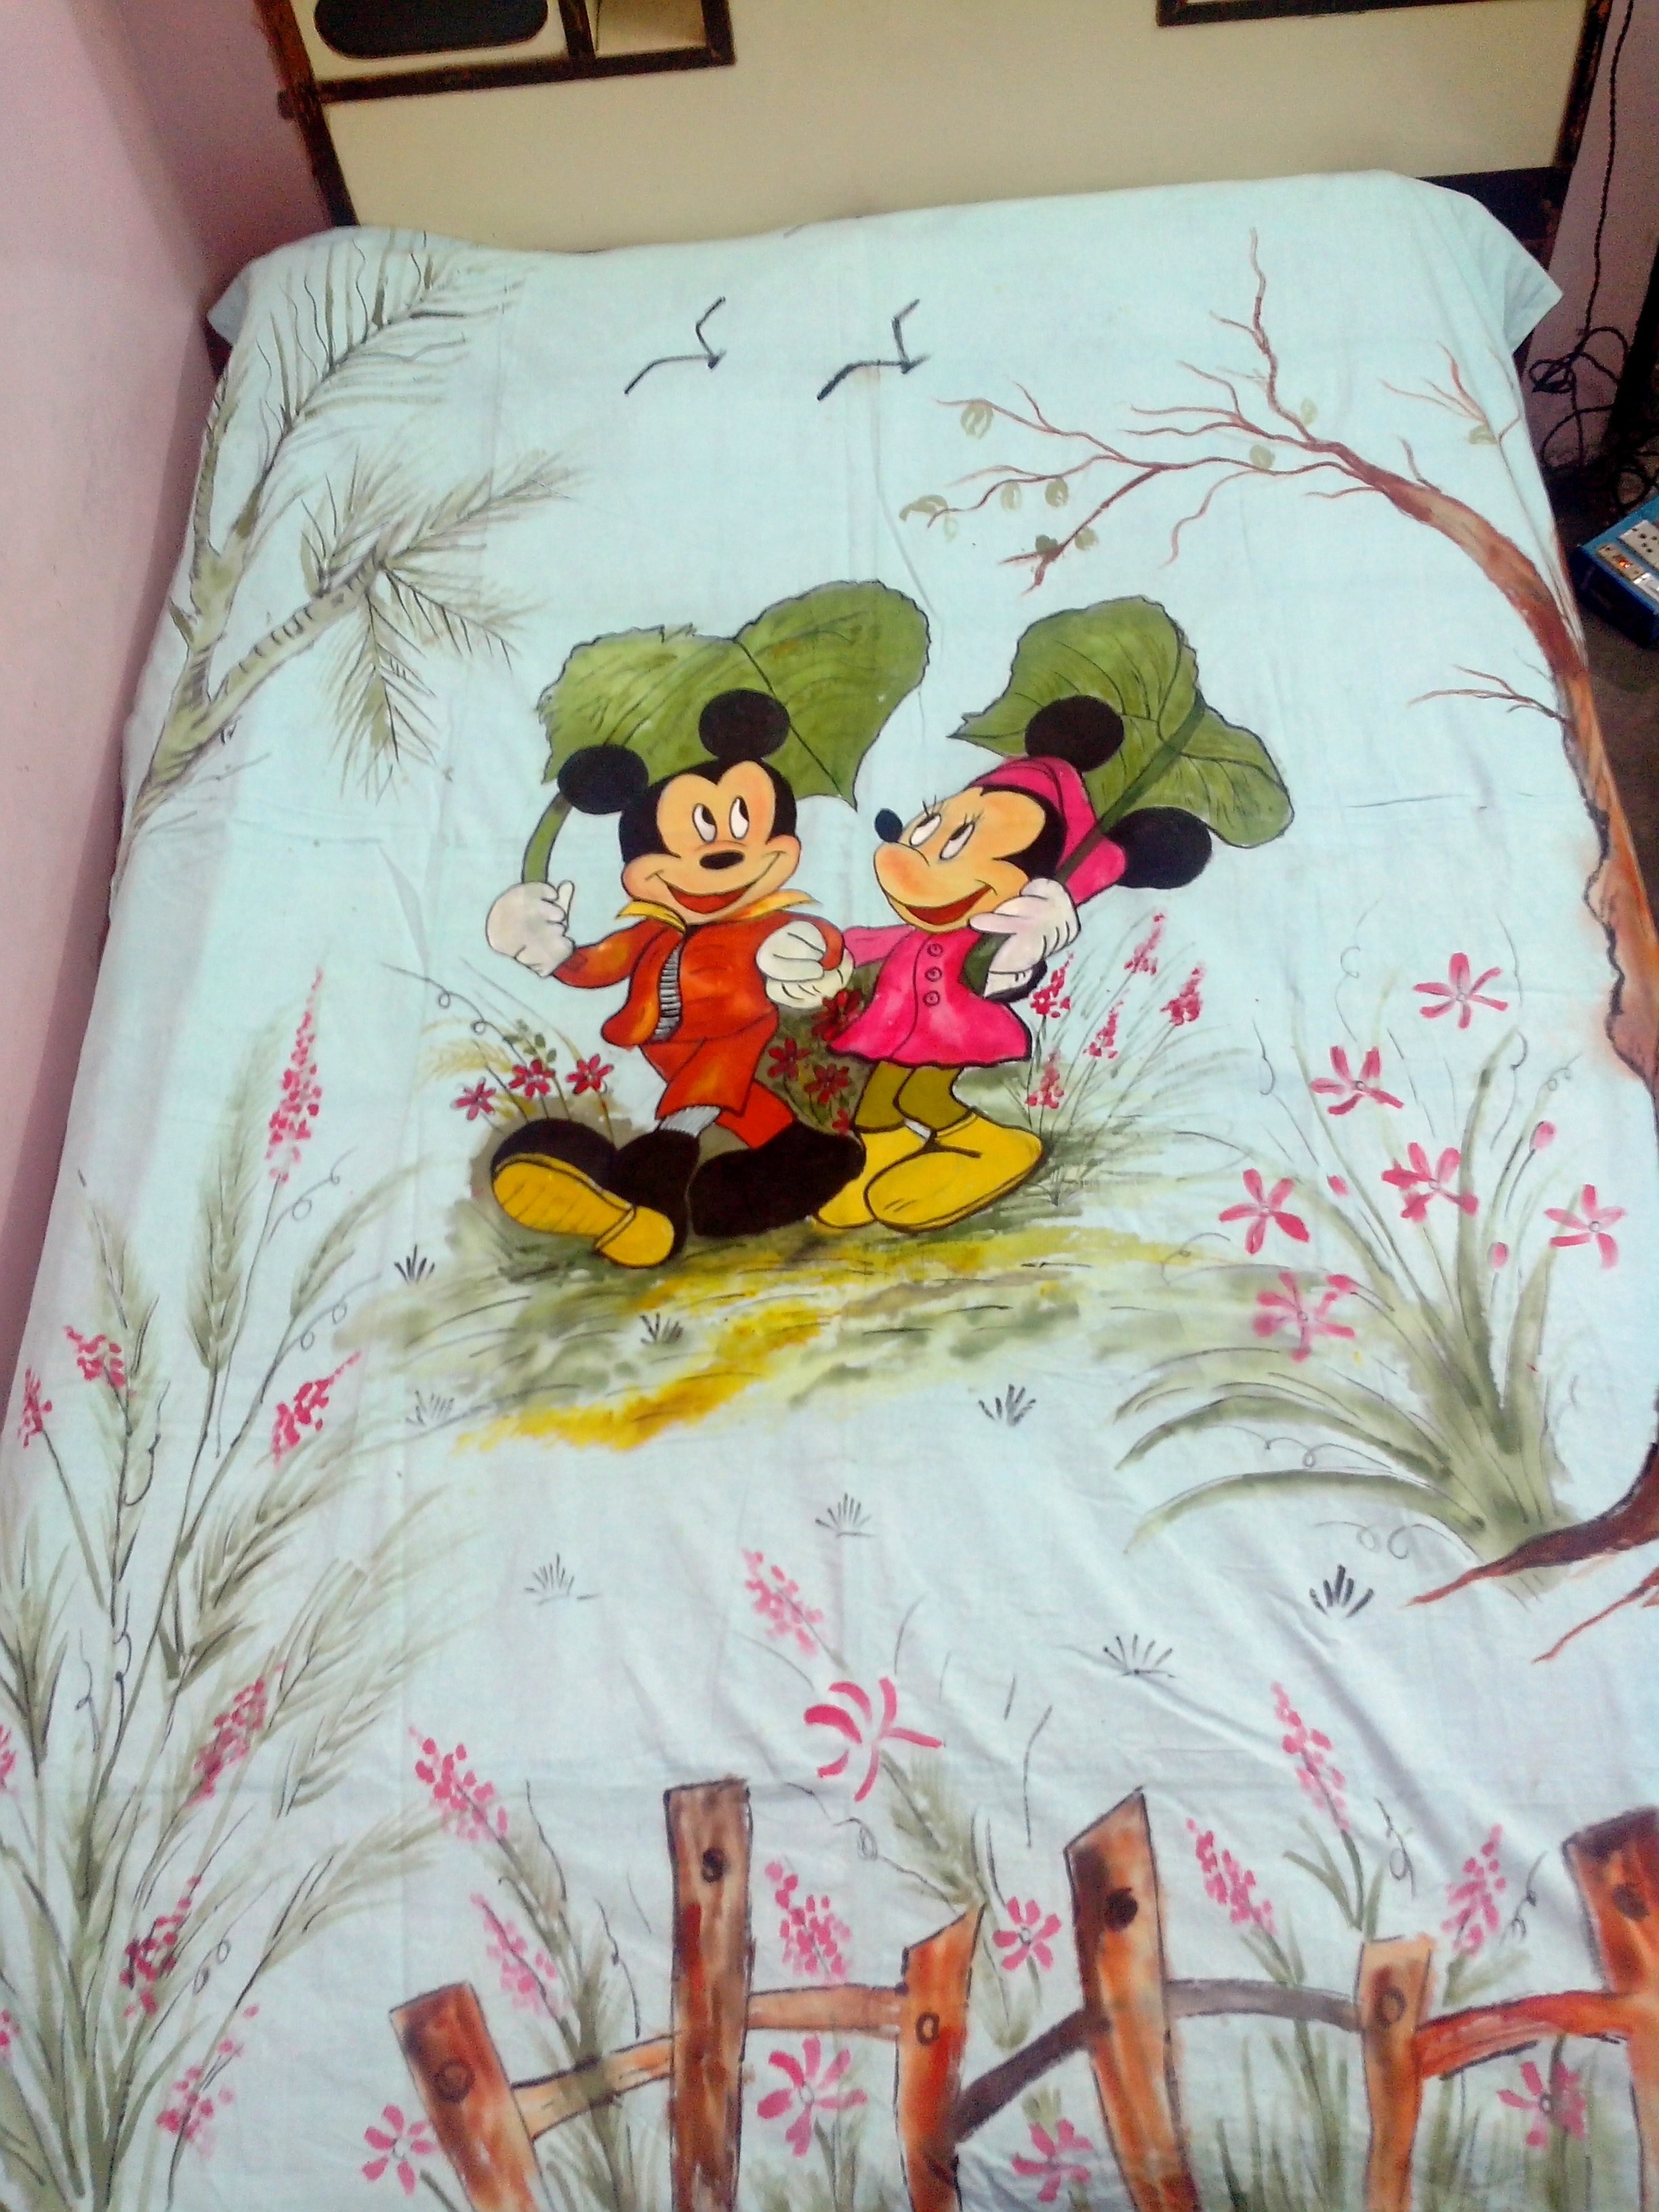 Hand Painted Bedsheet With Cartoonic Design Online Shopping 0